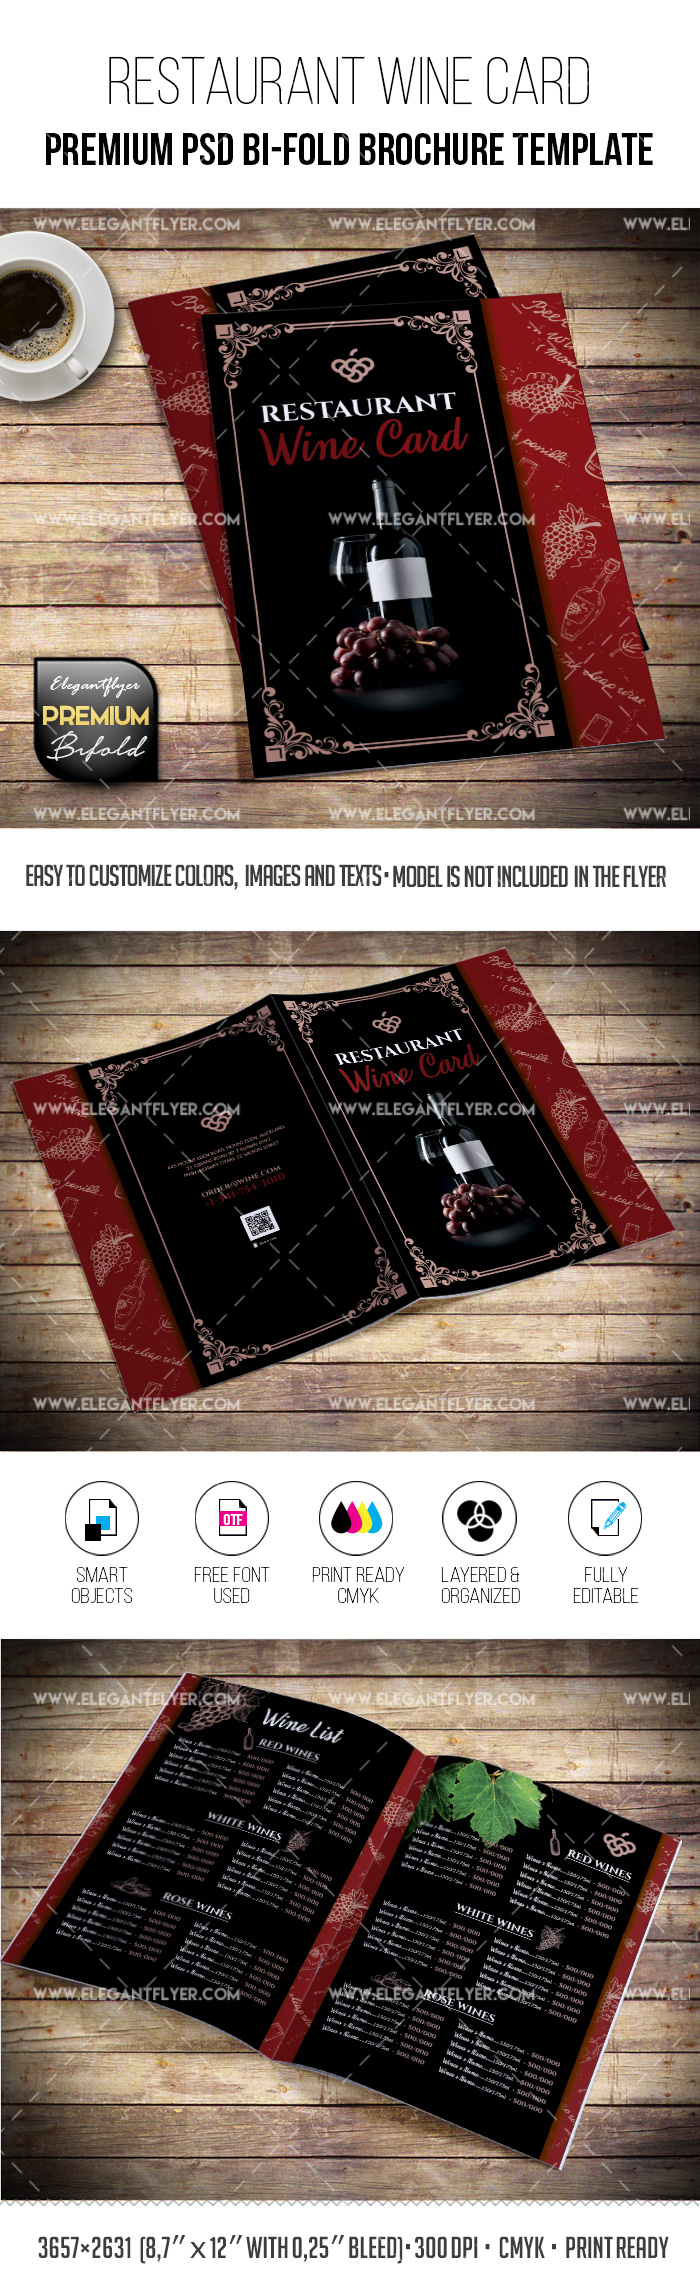 Restaurant Wine Card – Bi-Fold Brochure